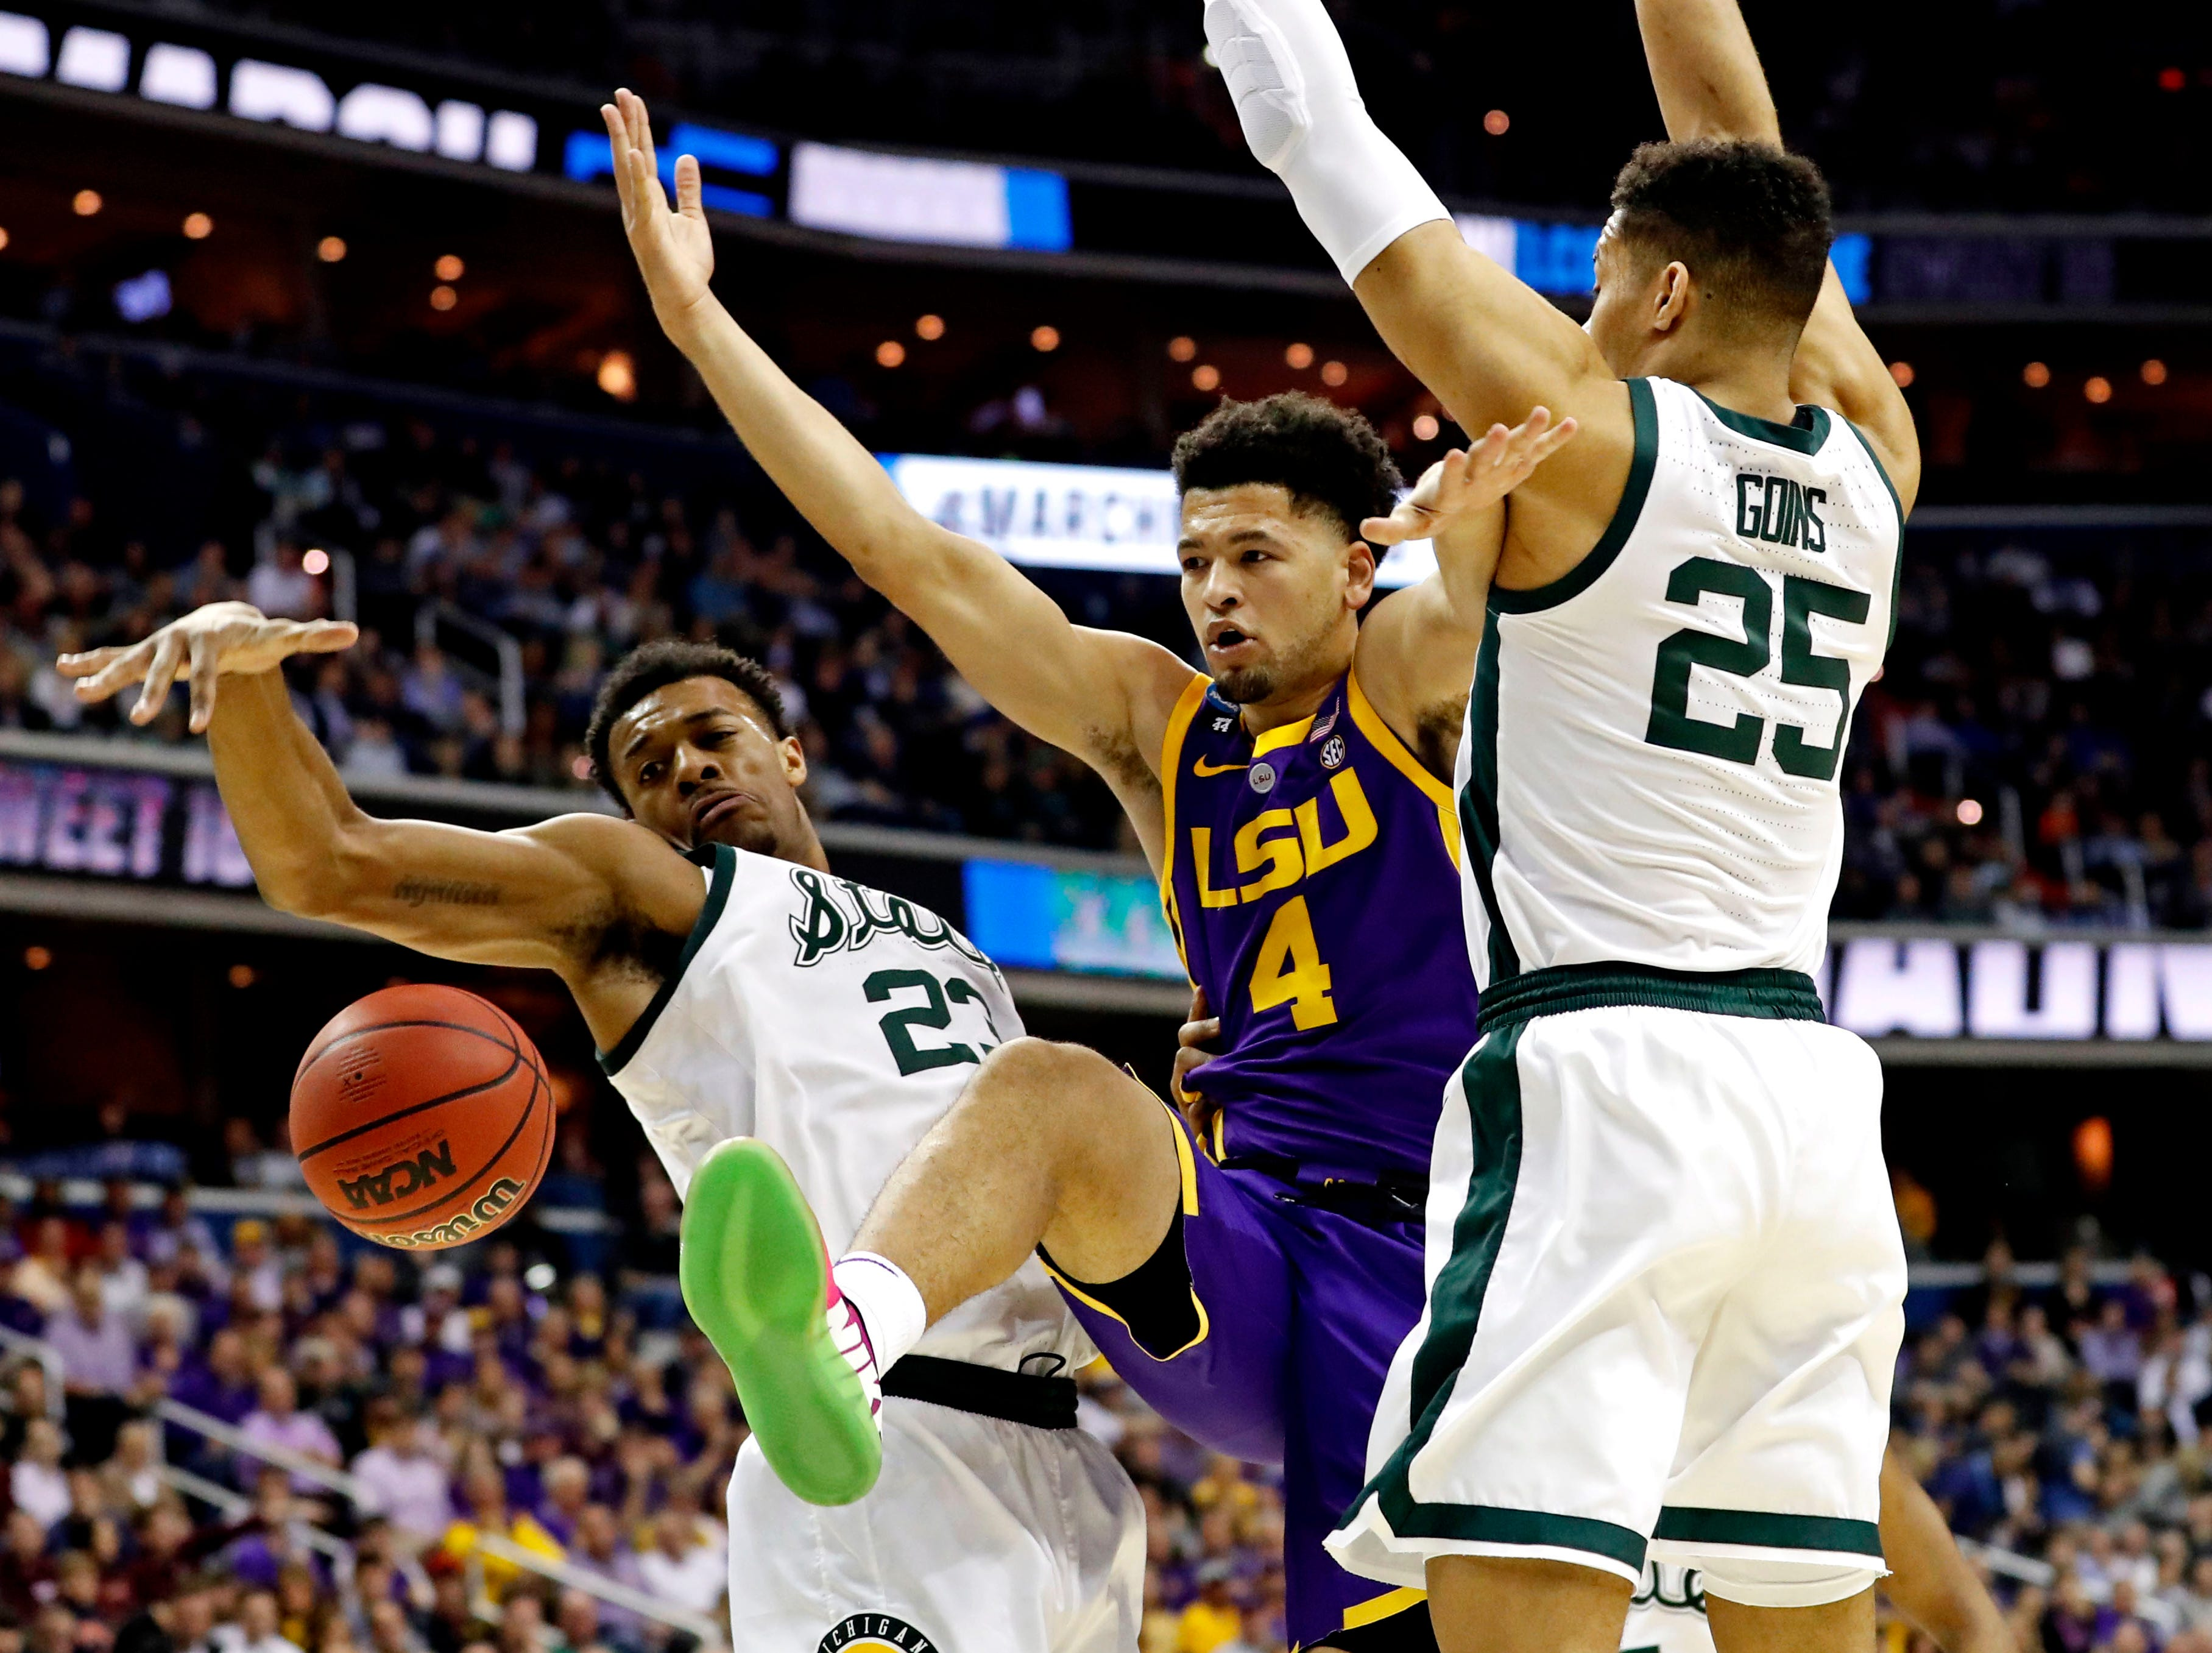 Mar 29, 2019; Washington, DC, USA; LSU Tigers guard Skylar Mays (4) drives to the basket against Michigan State Spartans forward Xavier Tillman (23) and forward Kenny Goins (25) during the first half in the semifinals of the east regional of the 2019 NCAA Tournament at Capital One Arena. Mandatory Credit: Geoff Burke-USA TODAY Sports